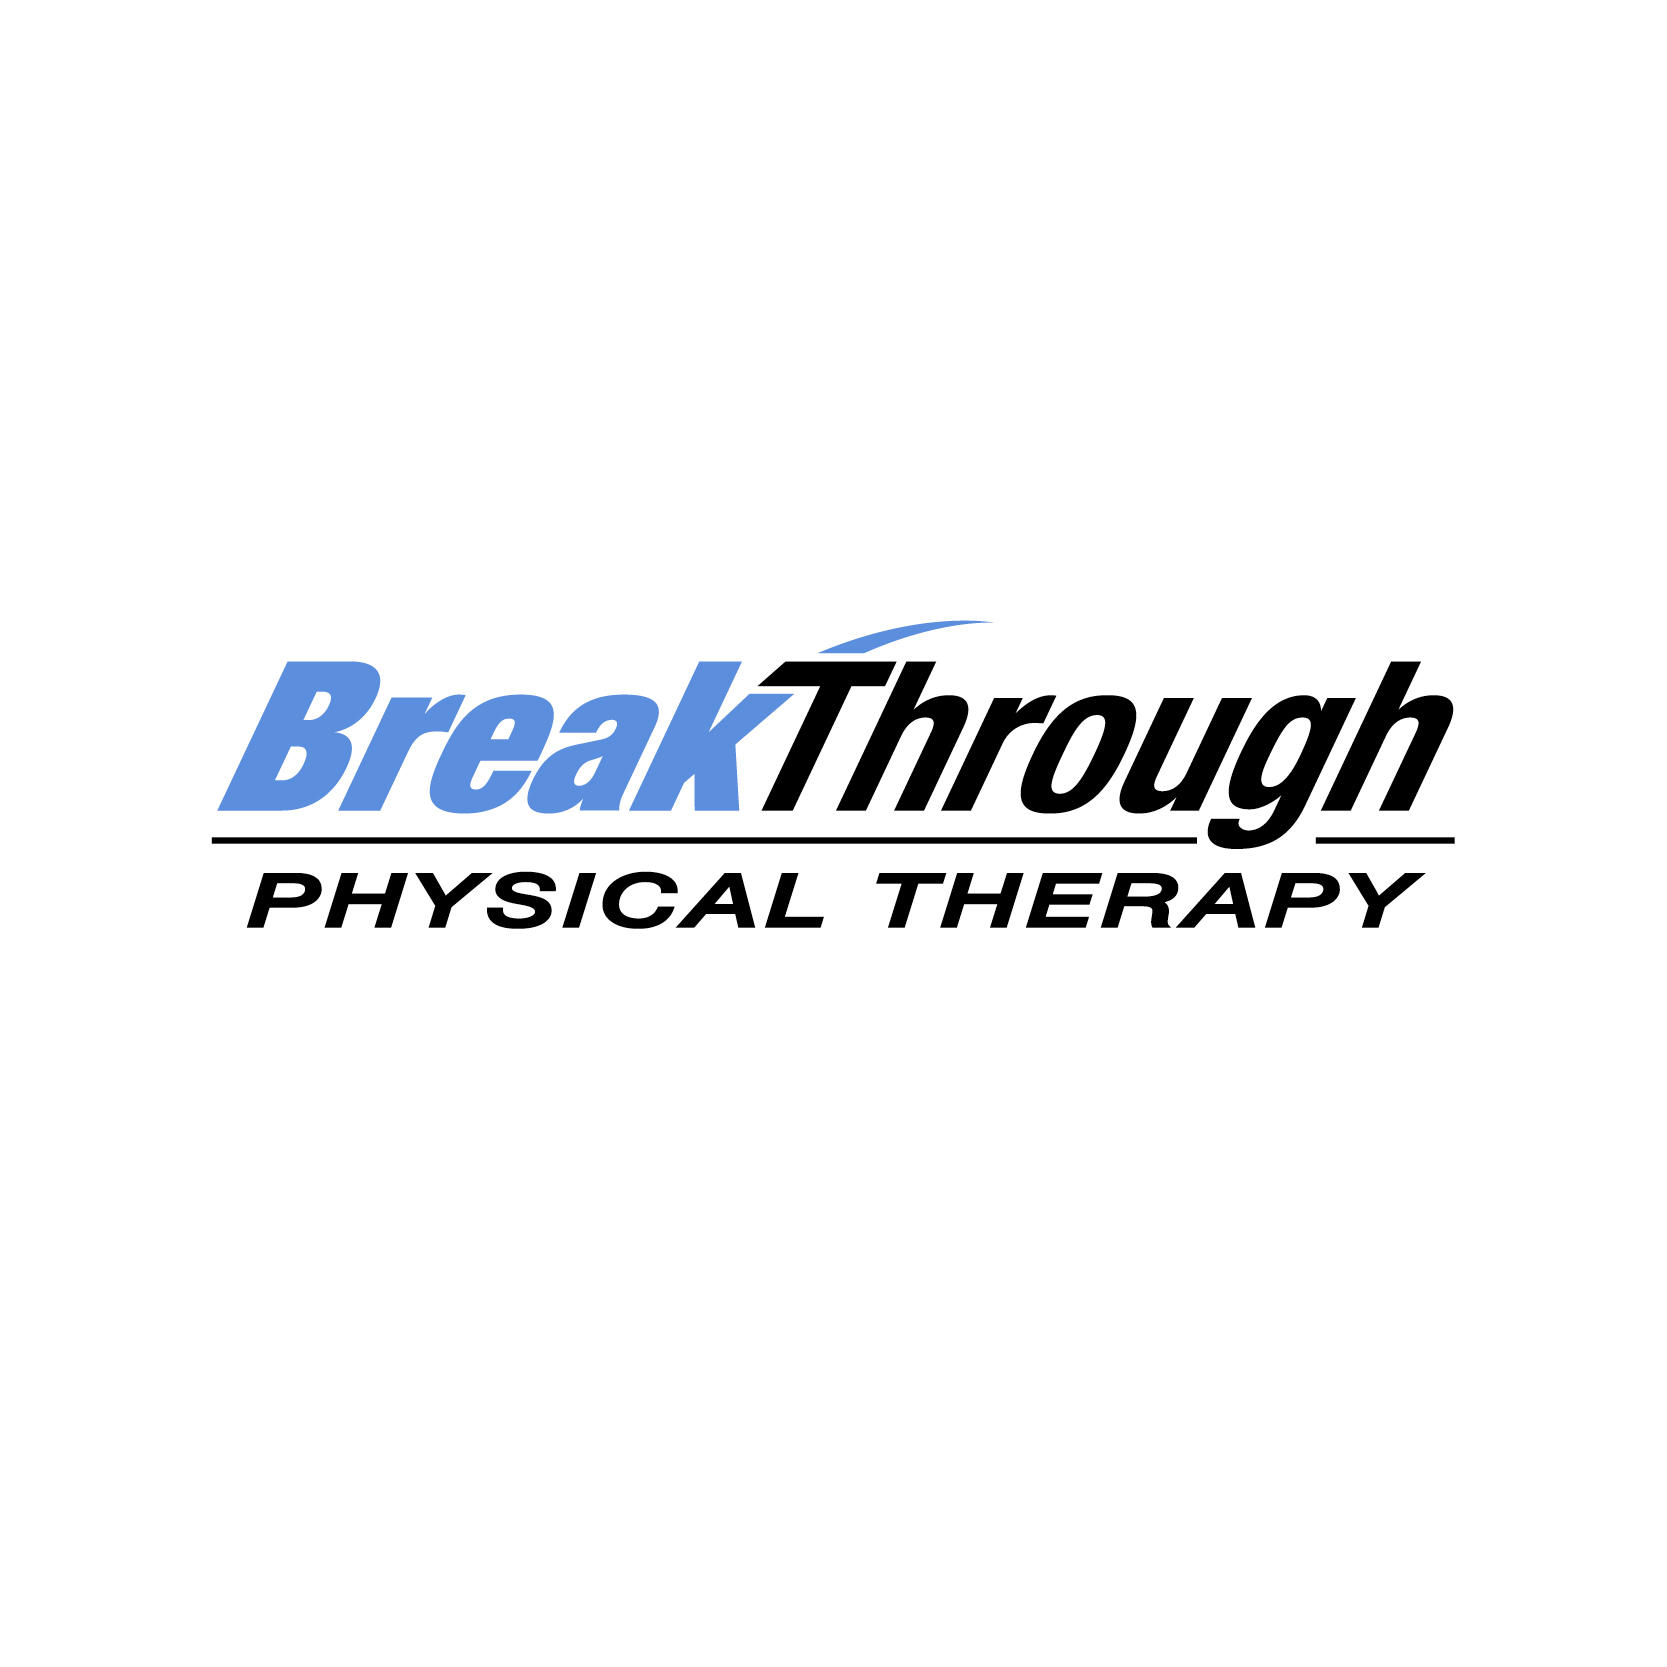 BreakThrough Physical Therapy - Cary, NC - Physical Therapy & Rehab